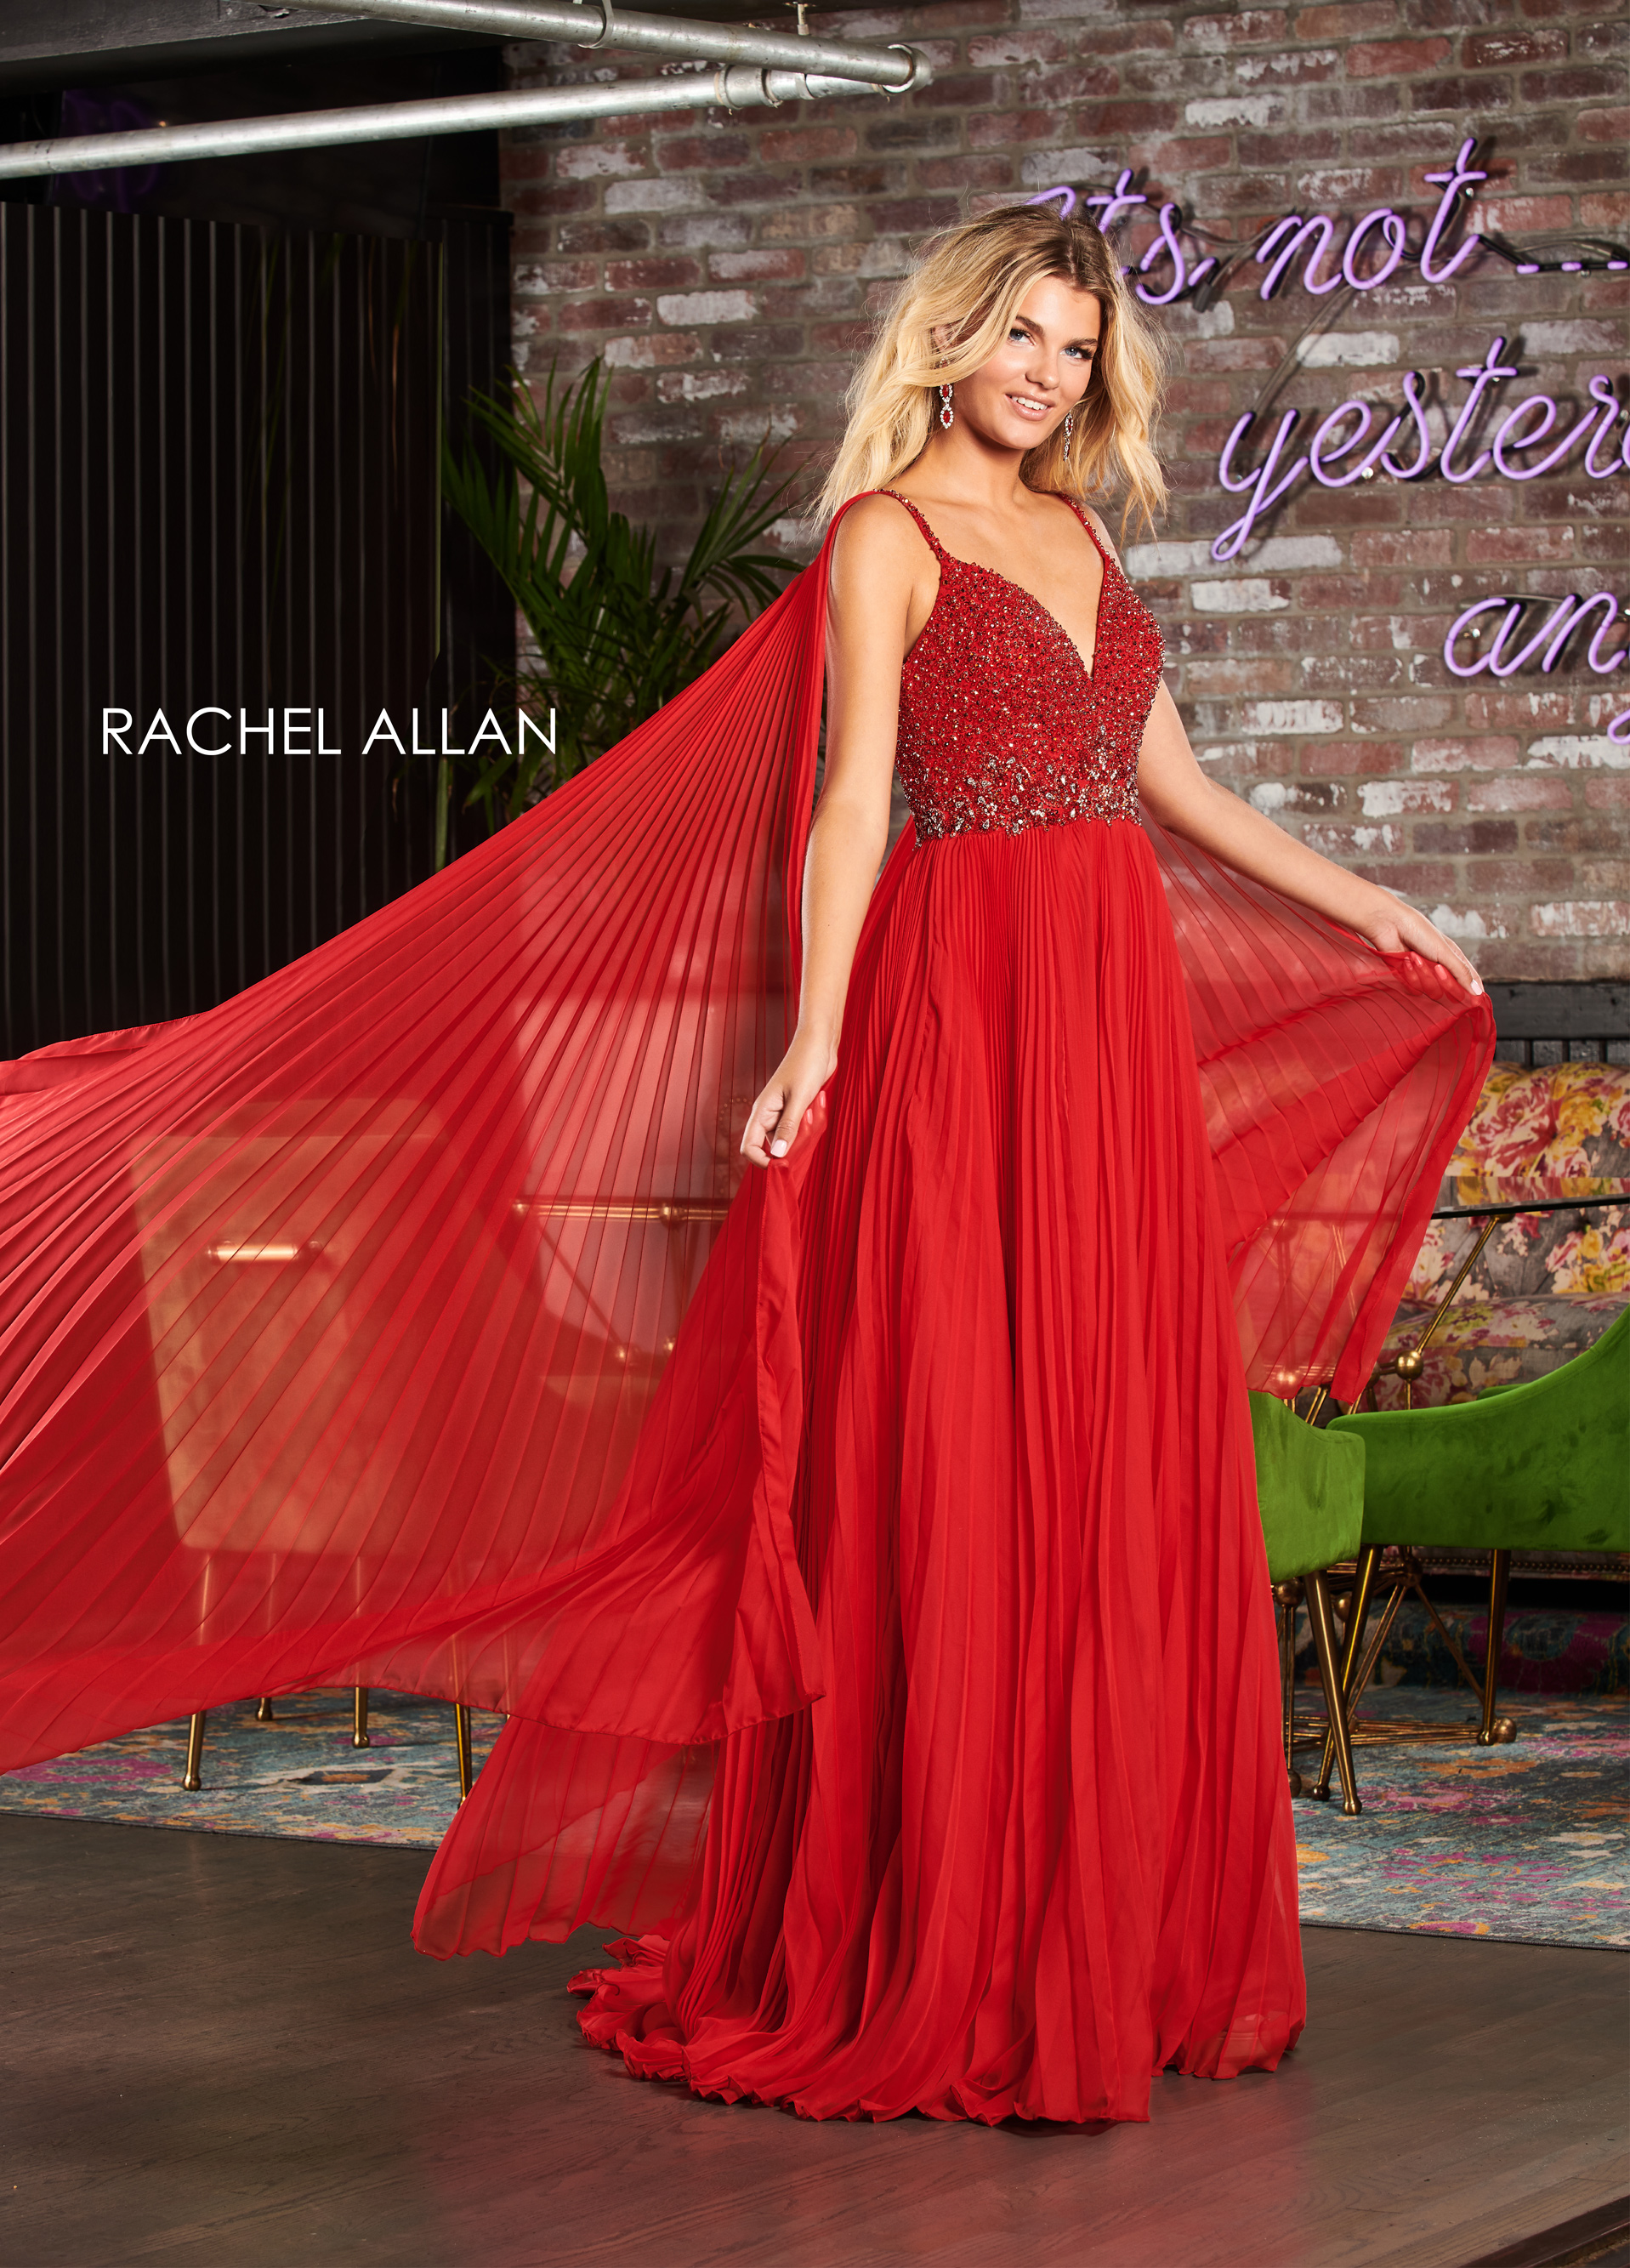 V-Neck A-Line Pageant Dresses in Red Color